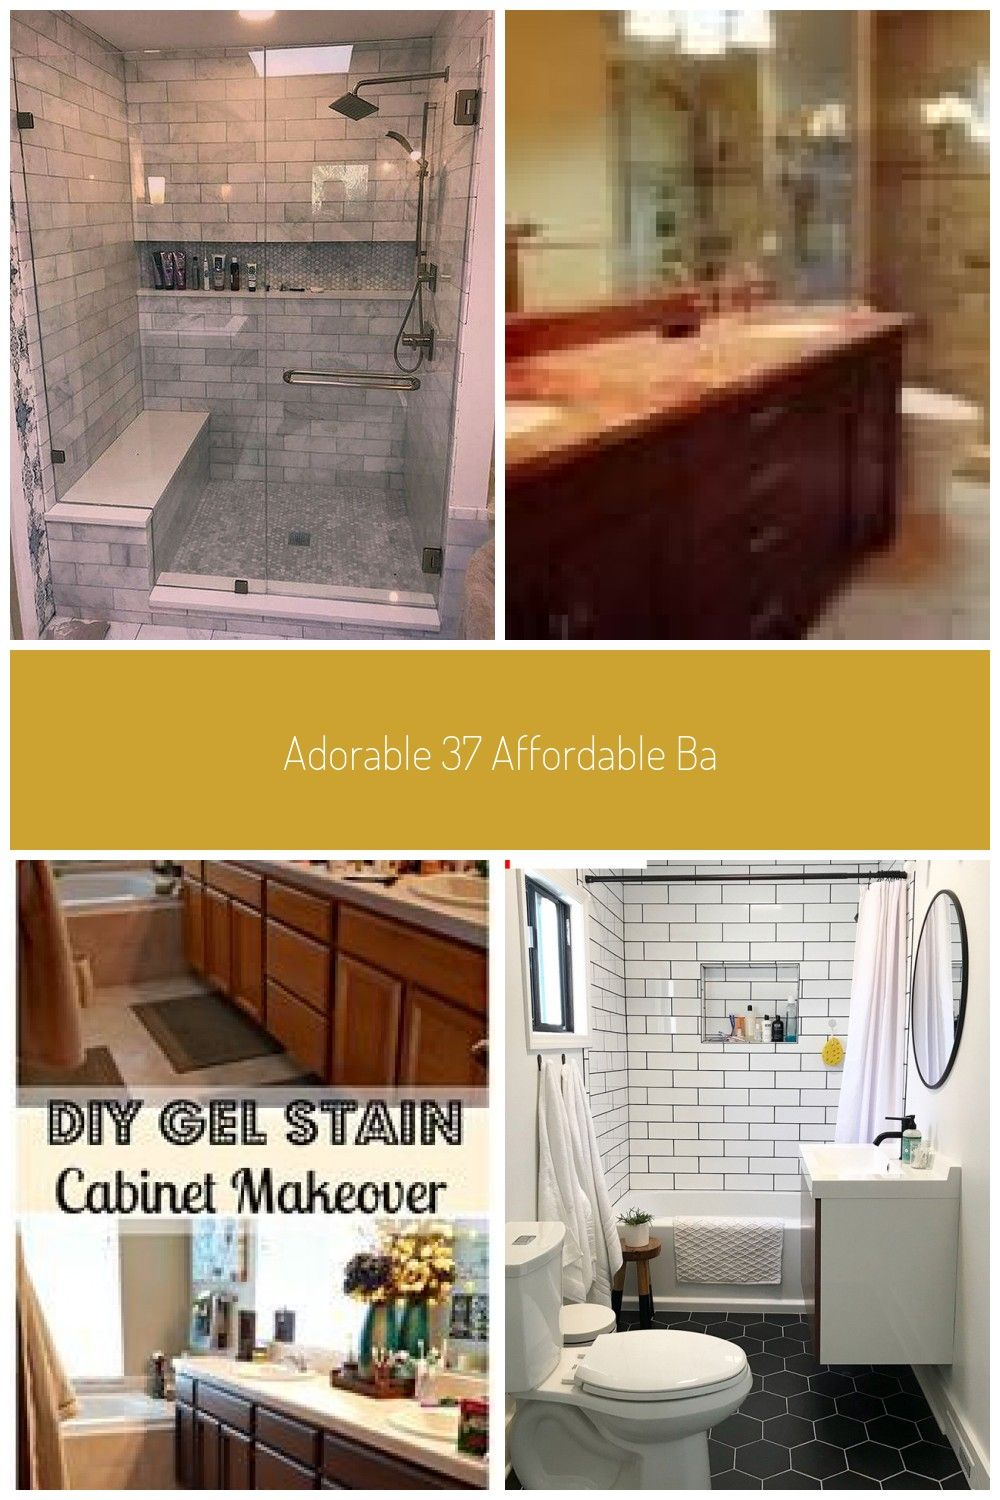 Adorable 37 Affordable Bathroom Remodel Design Ideas On A Budget That Will Inspi Ba In 2020 Affordable Bathroom Remodel Bathrooms Remodel Bathroom Remodel Designs